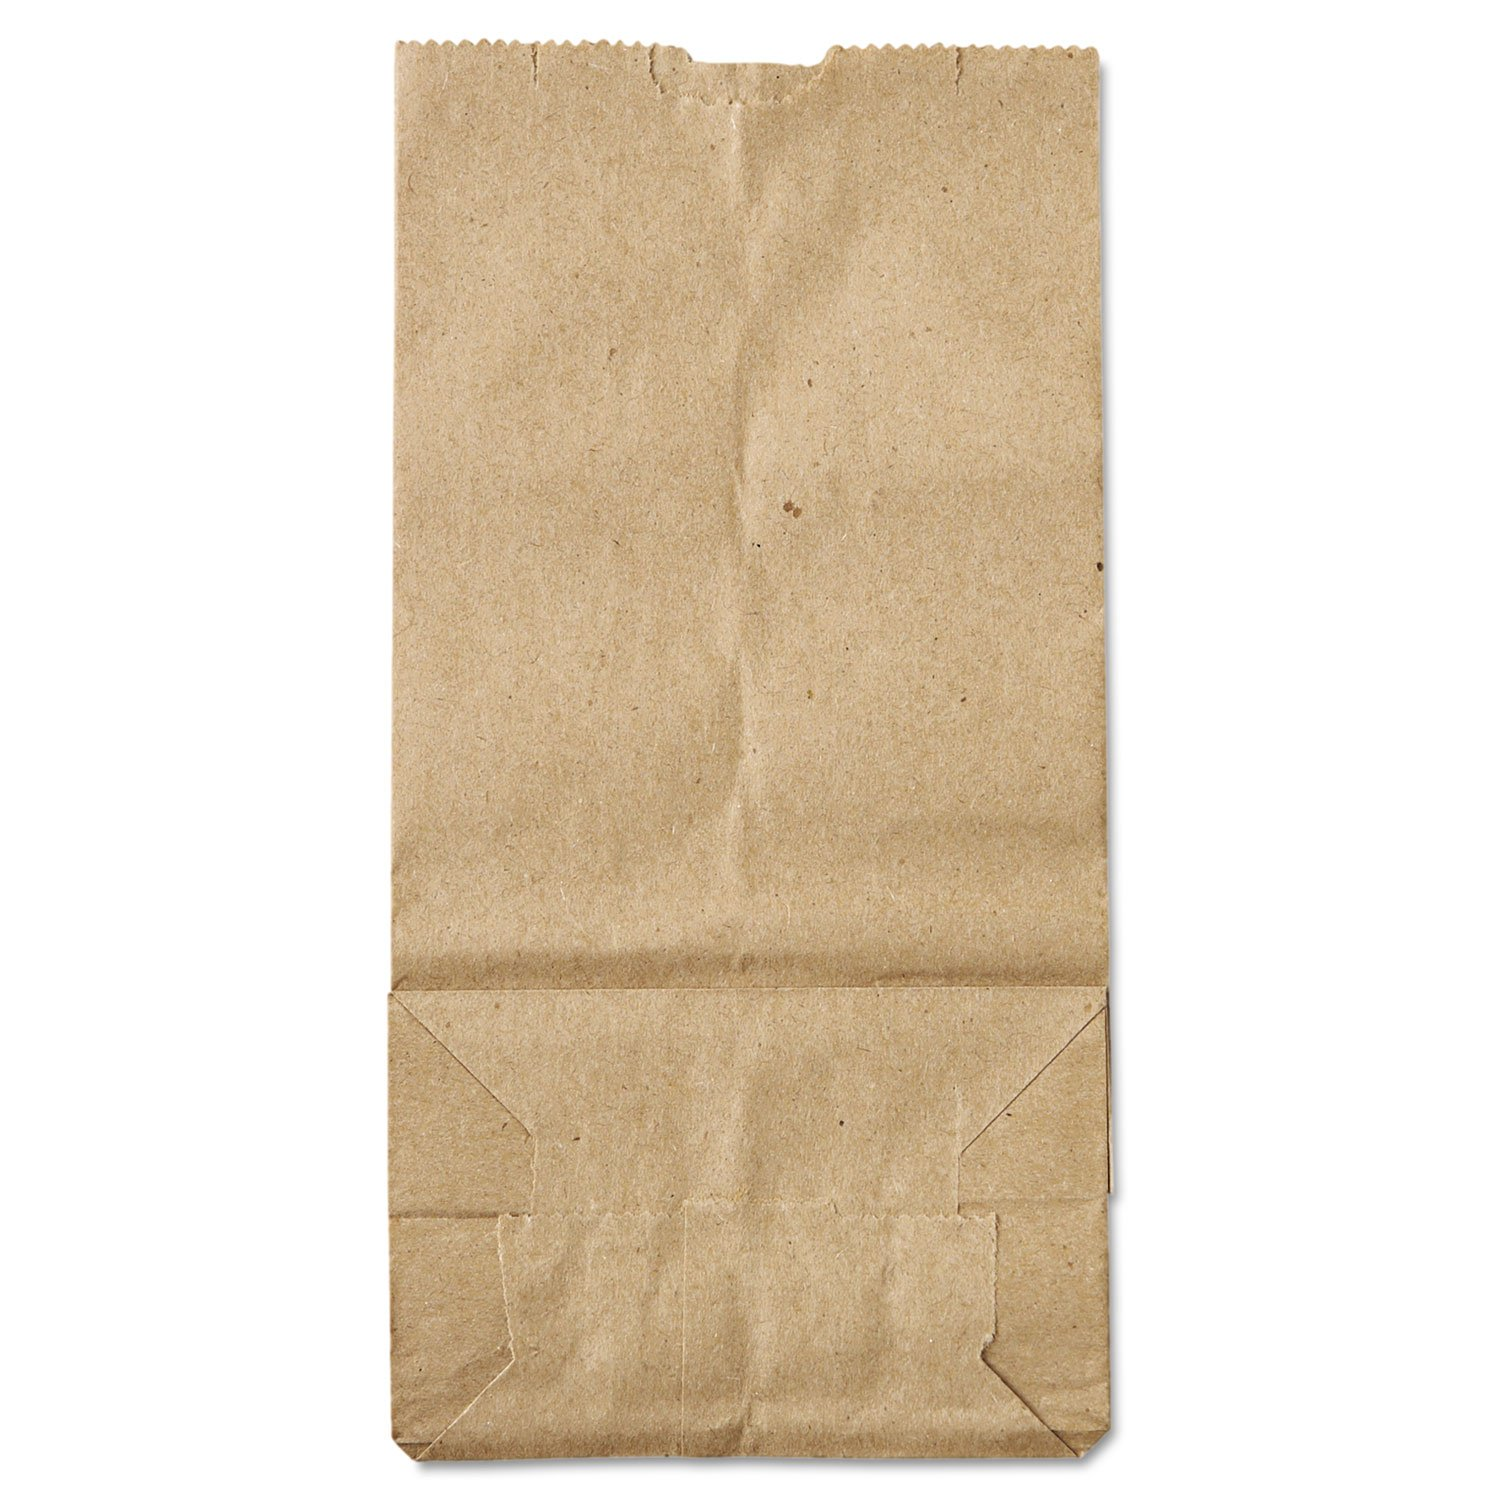 Amazon.com: Bolsas de papel & Sacos 2 # Natural bolsa de ...